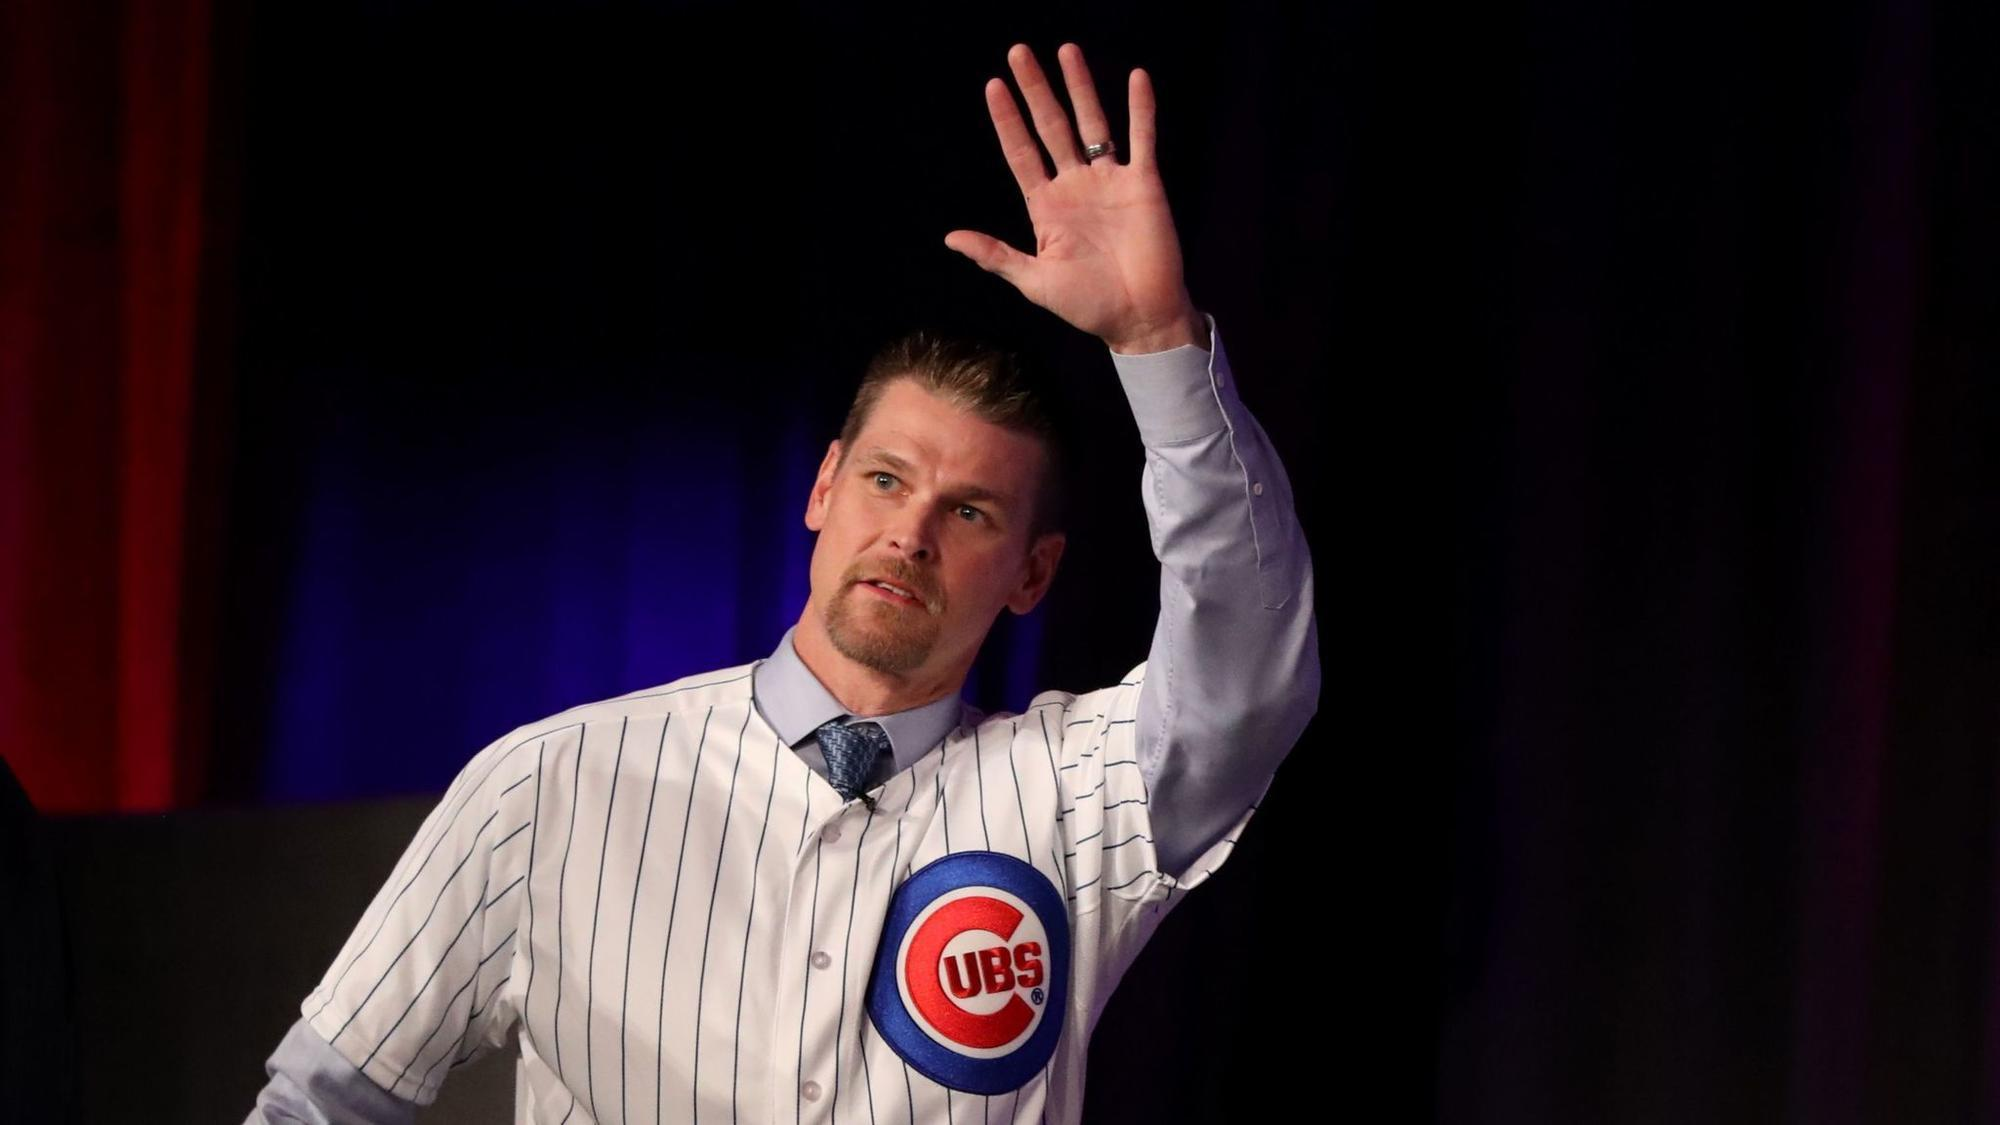 Ct-spt-cubs-kerry-wood-hall-of-fame-20180125